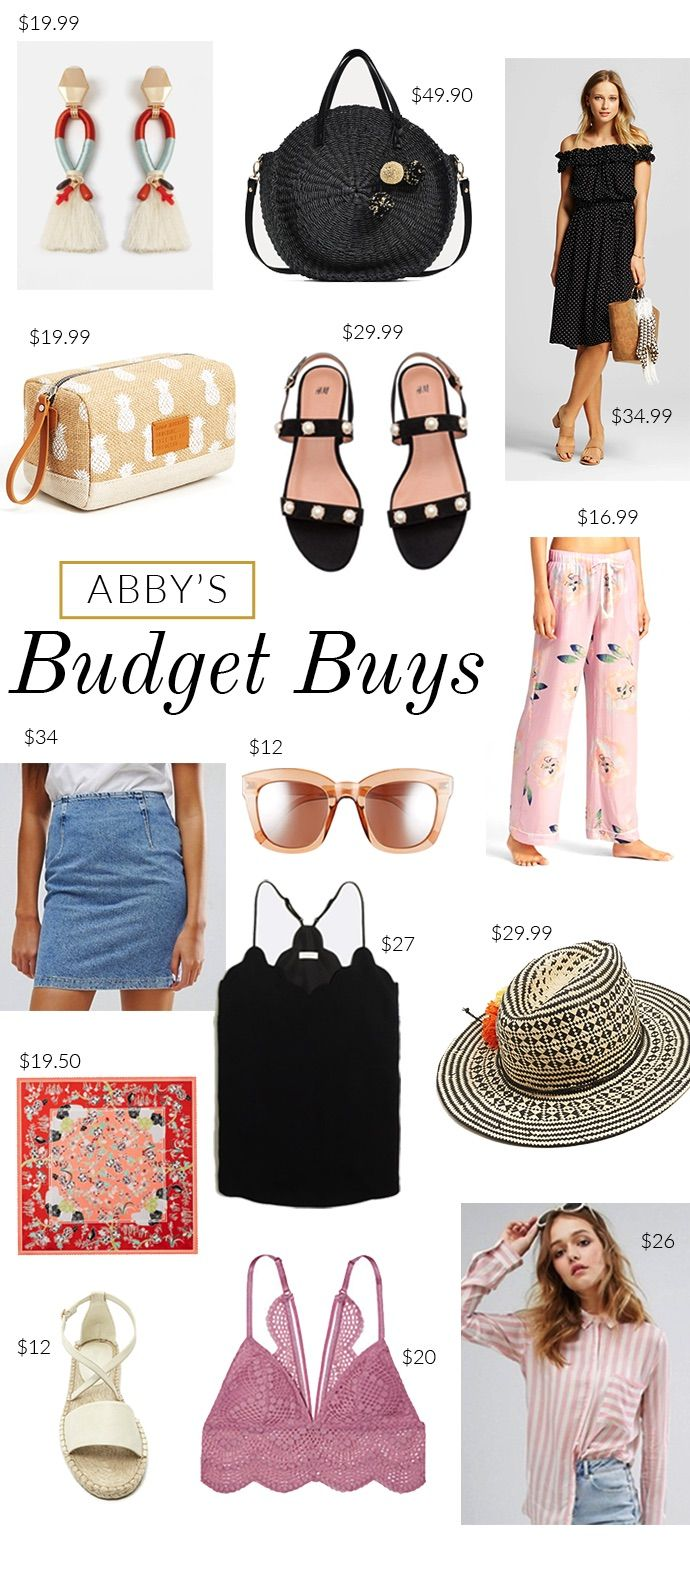 Abby shares her budget buys for April, which is full of fashion and style deals under $50.